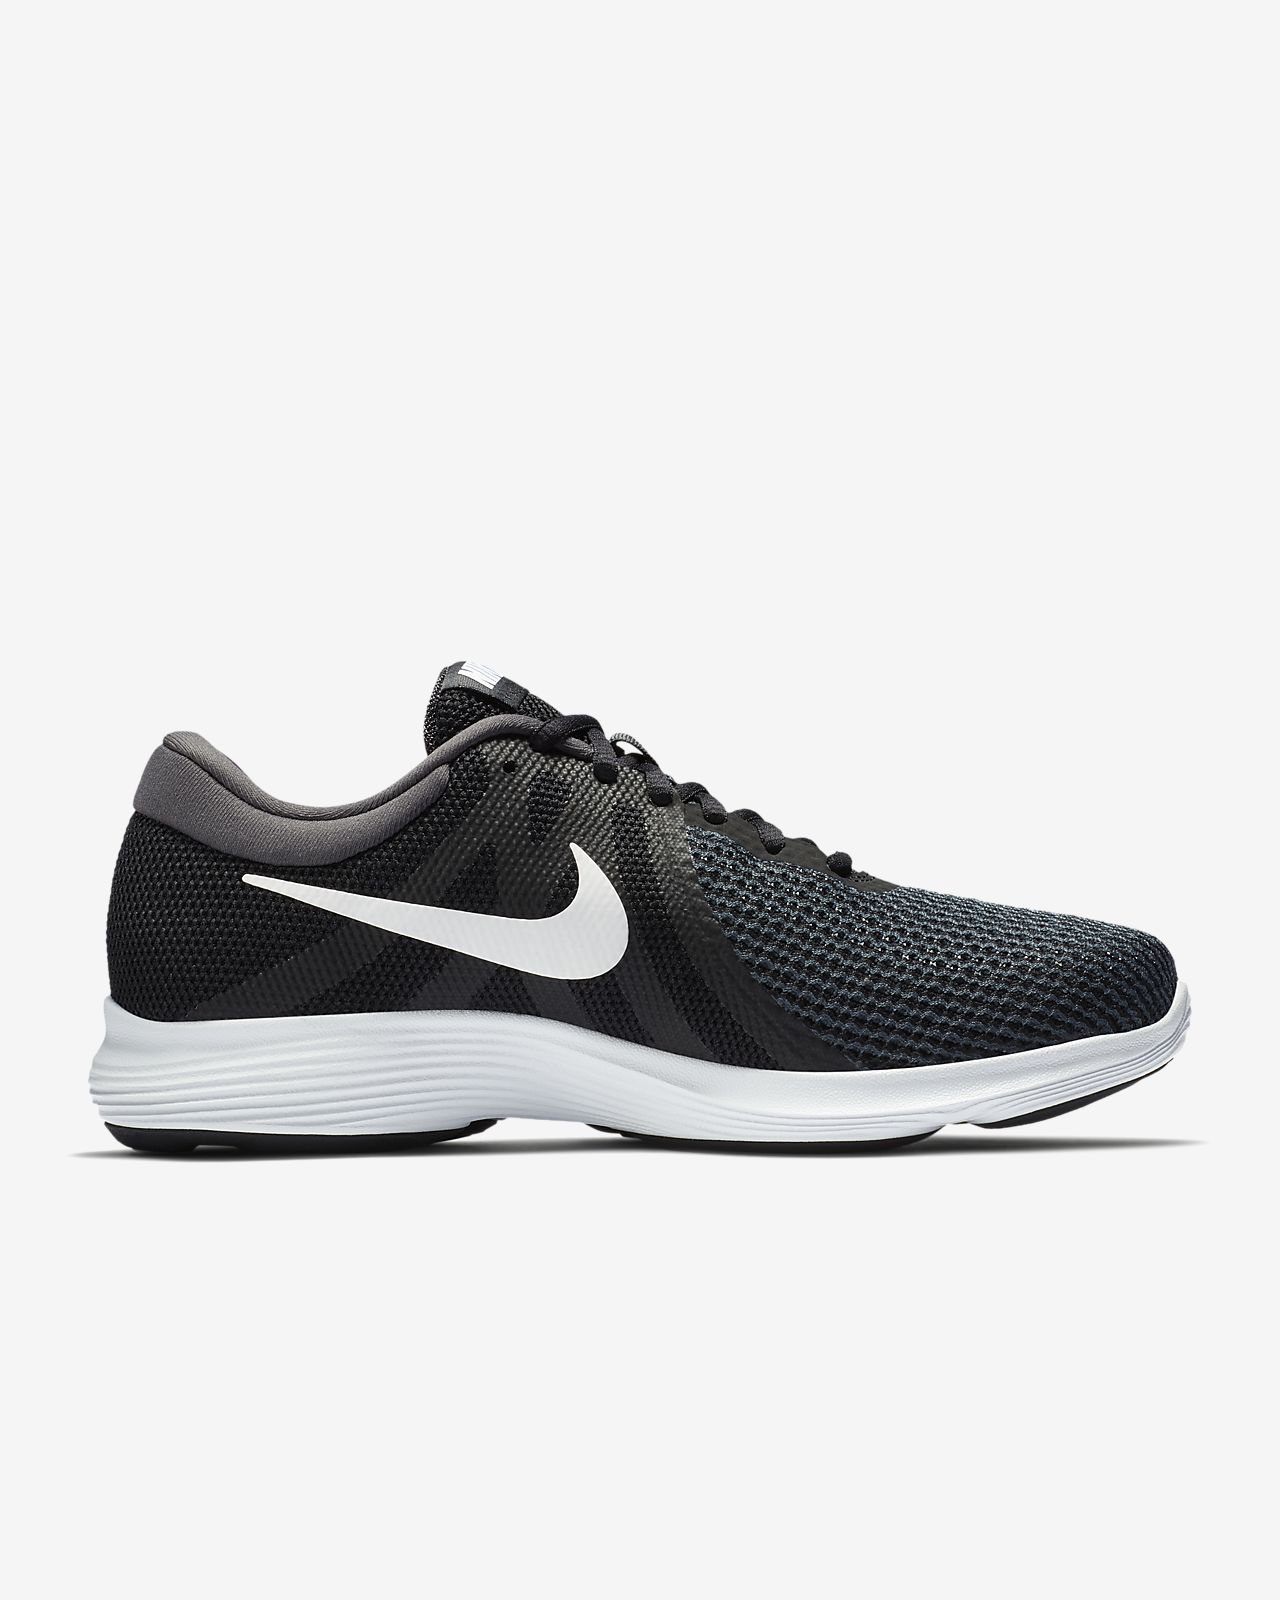 849ae4be896 Nike Revolution 4 (Extra-Wide) Men's Running Shoe